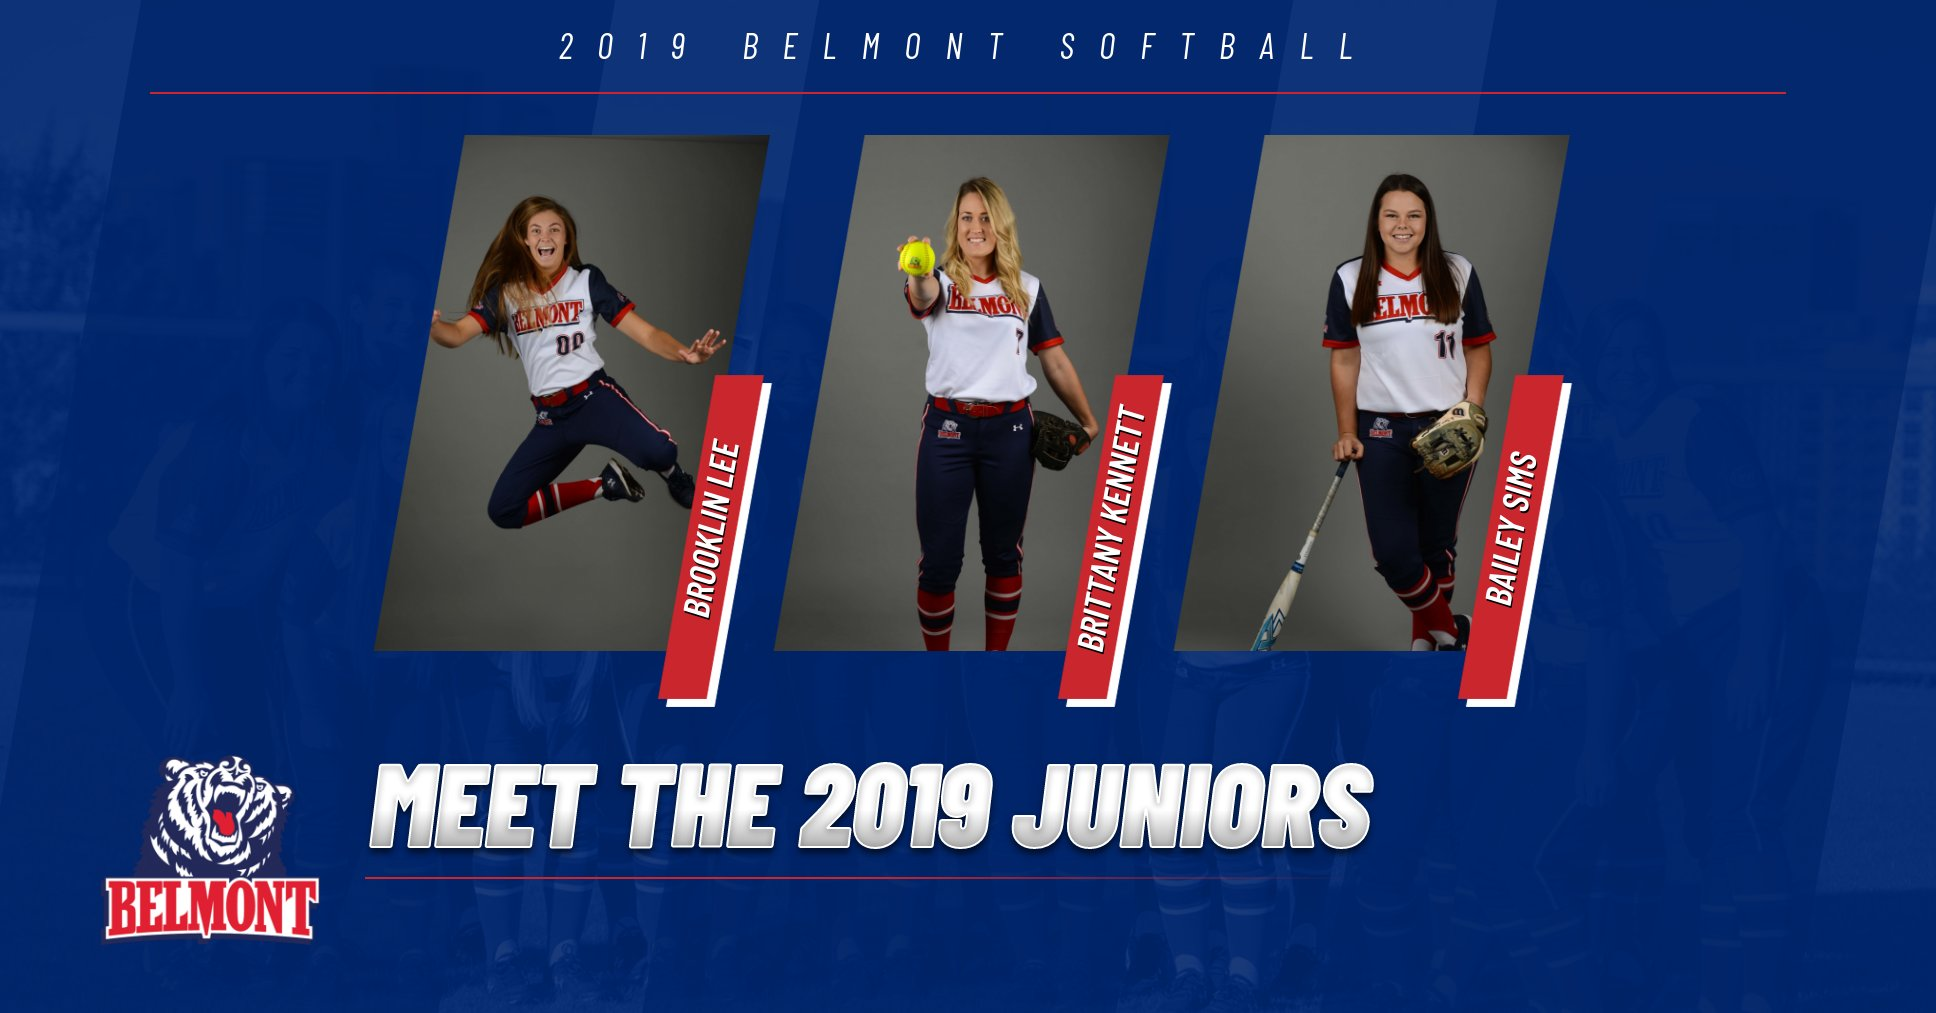 Meet the 2019 Softball Juniors